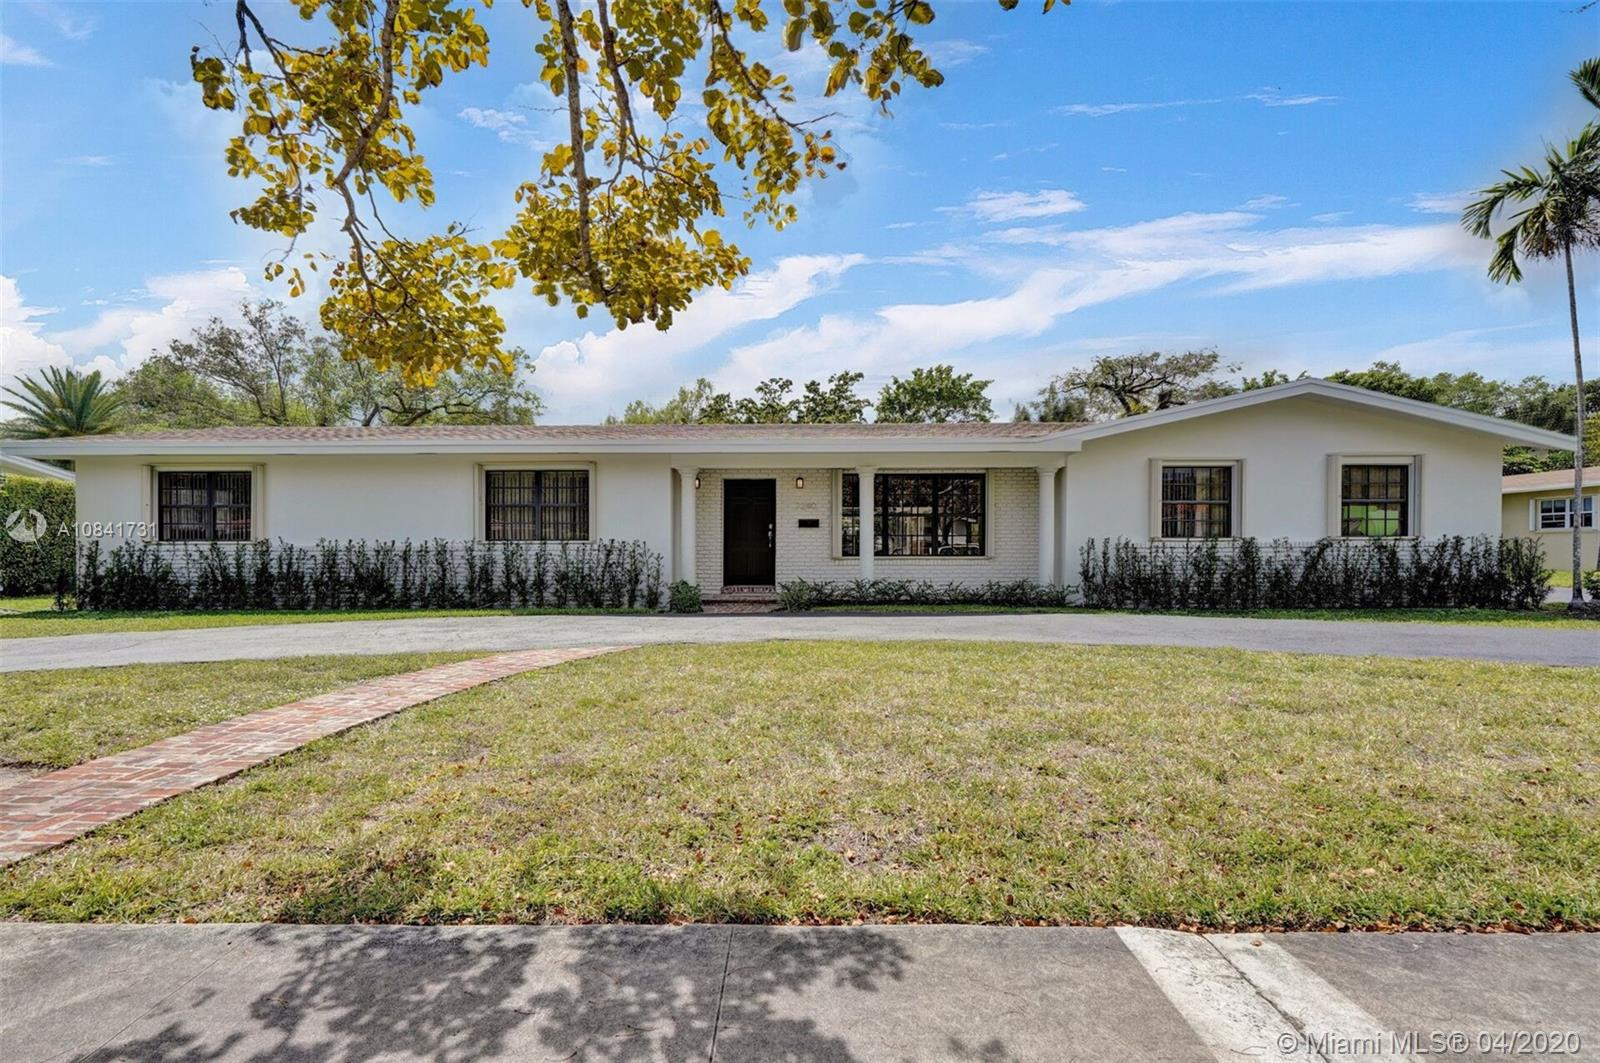 7240 SW 128th St, Pinecrest, Florida 33156, 3 Bedrooms Bedrooms, ,2 BathroomsBathrooms,Residential,For Sale,7240 SW 128th St,A10841731